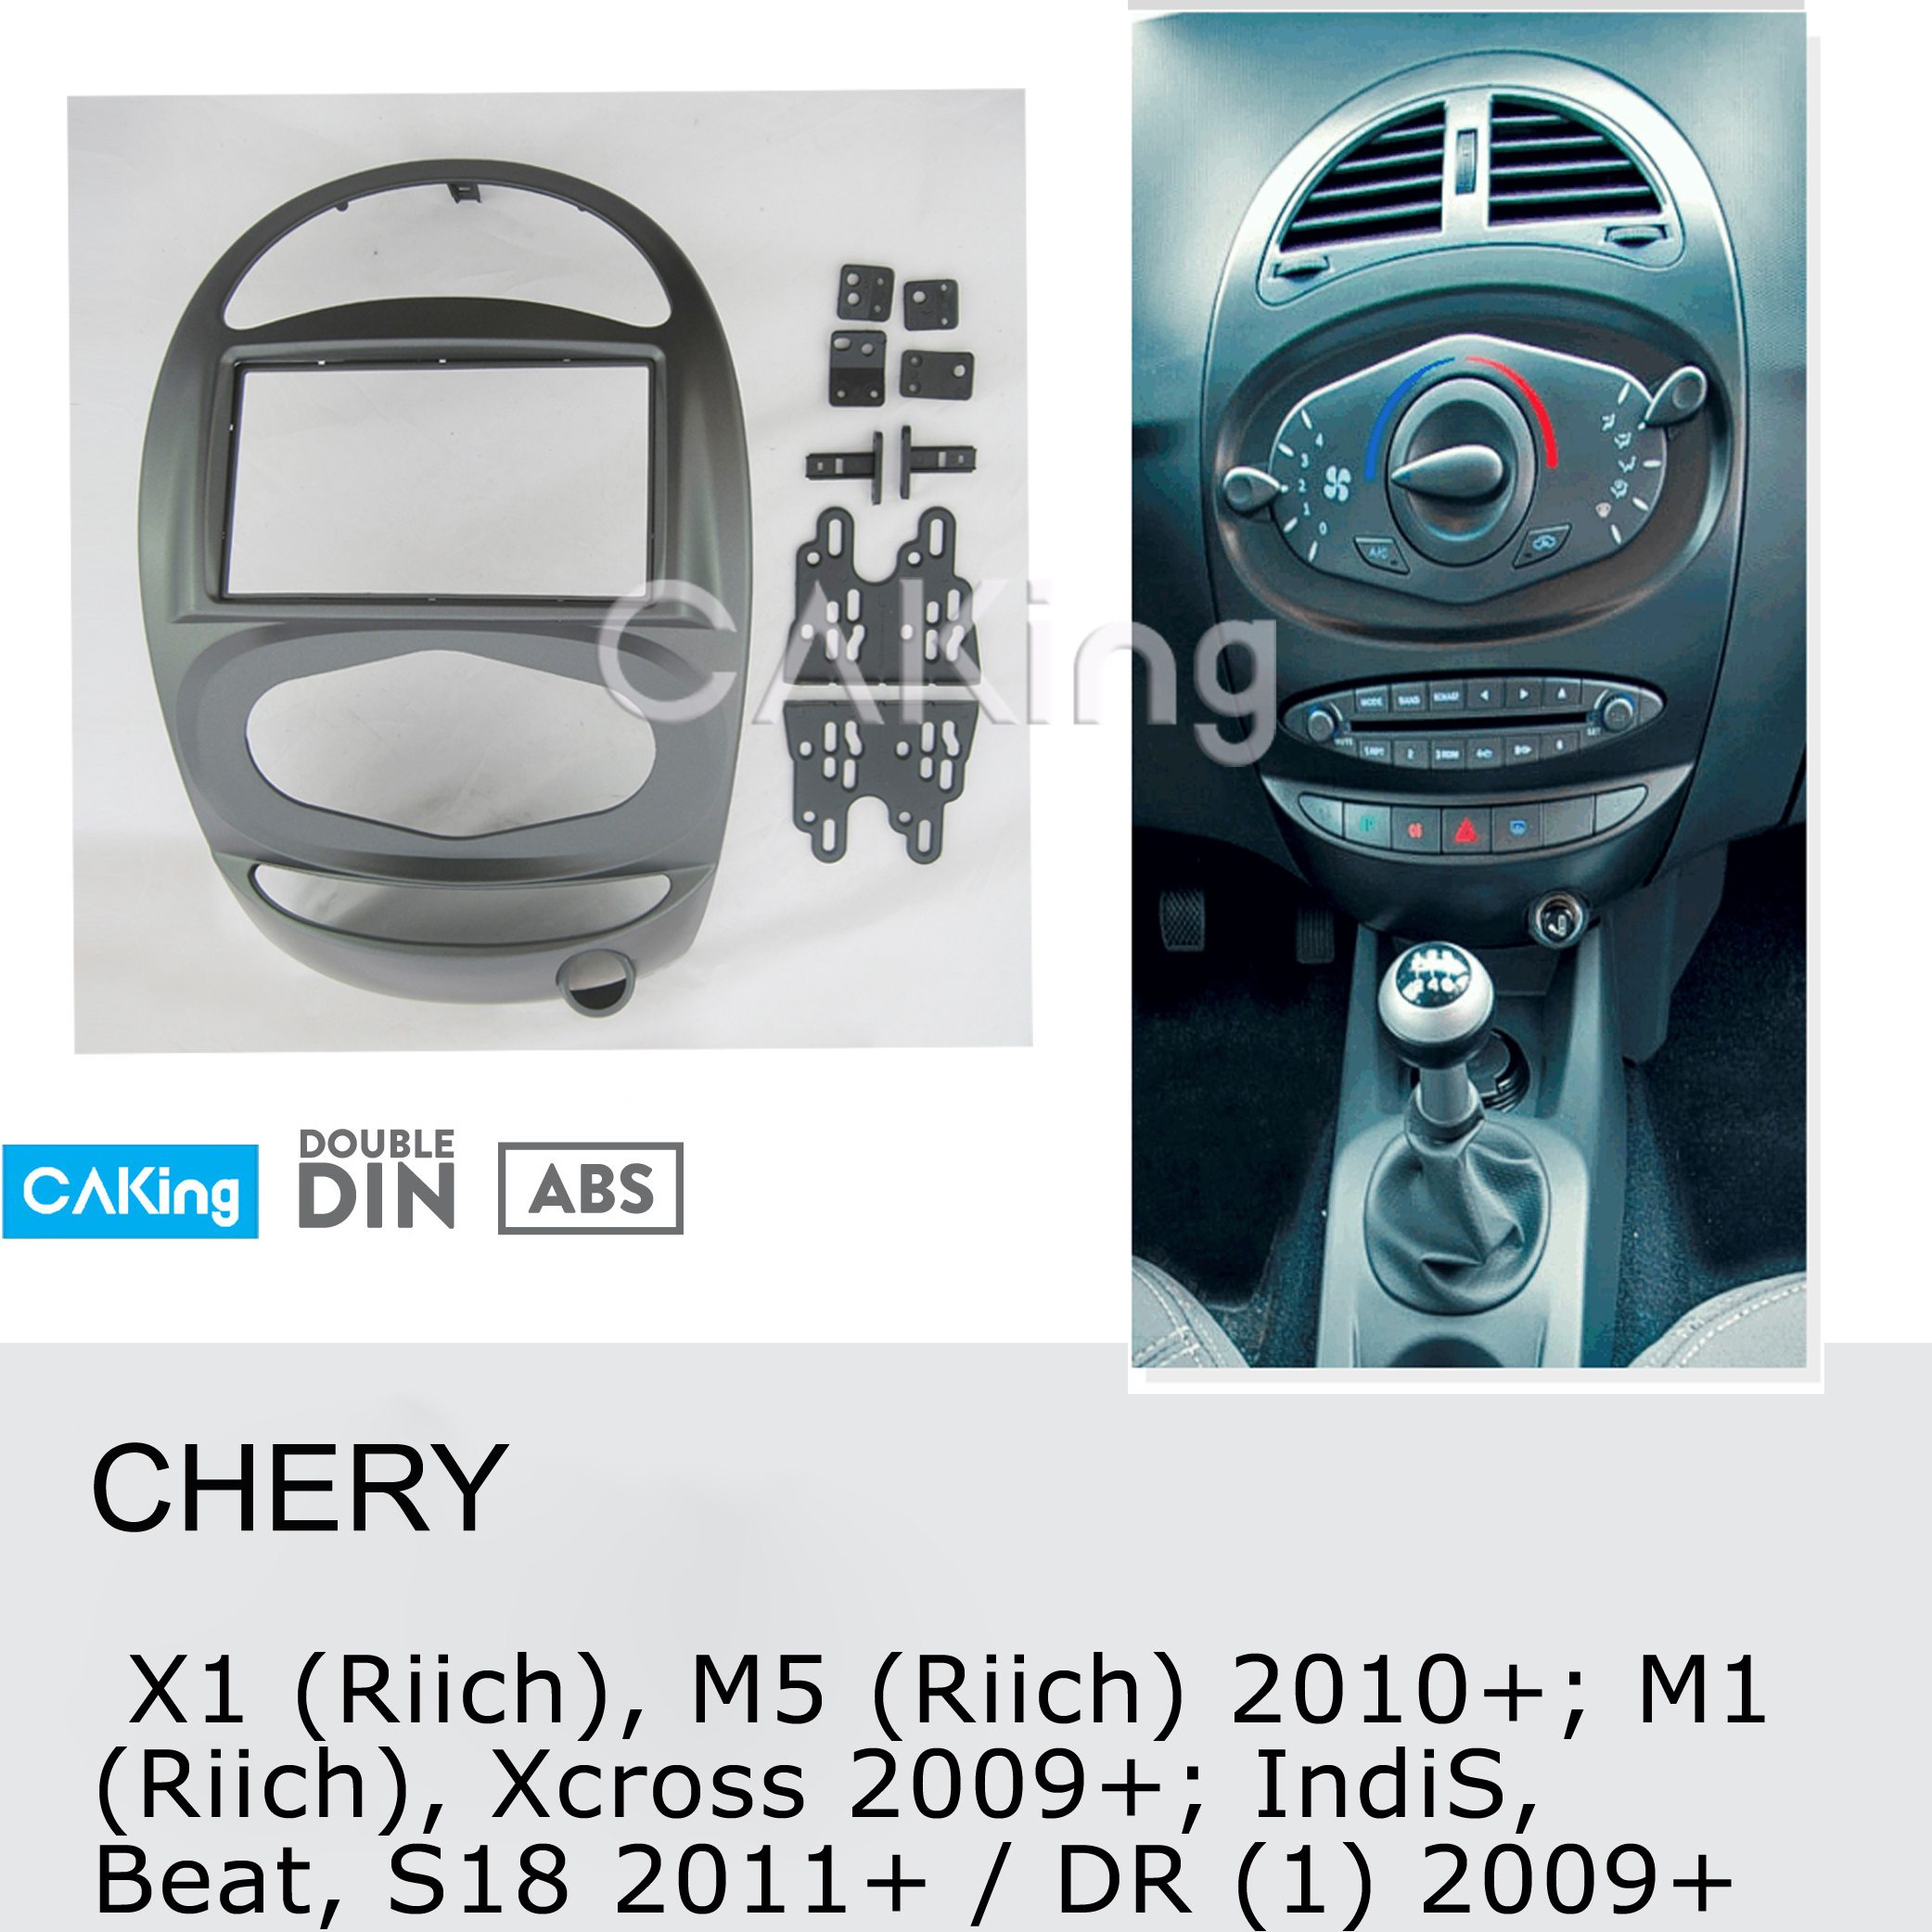 Panel For CHERY X1 Riich M5 Riich 2010 M1 Riich Xcross 2009 IndiS Beat S18 2011